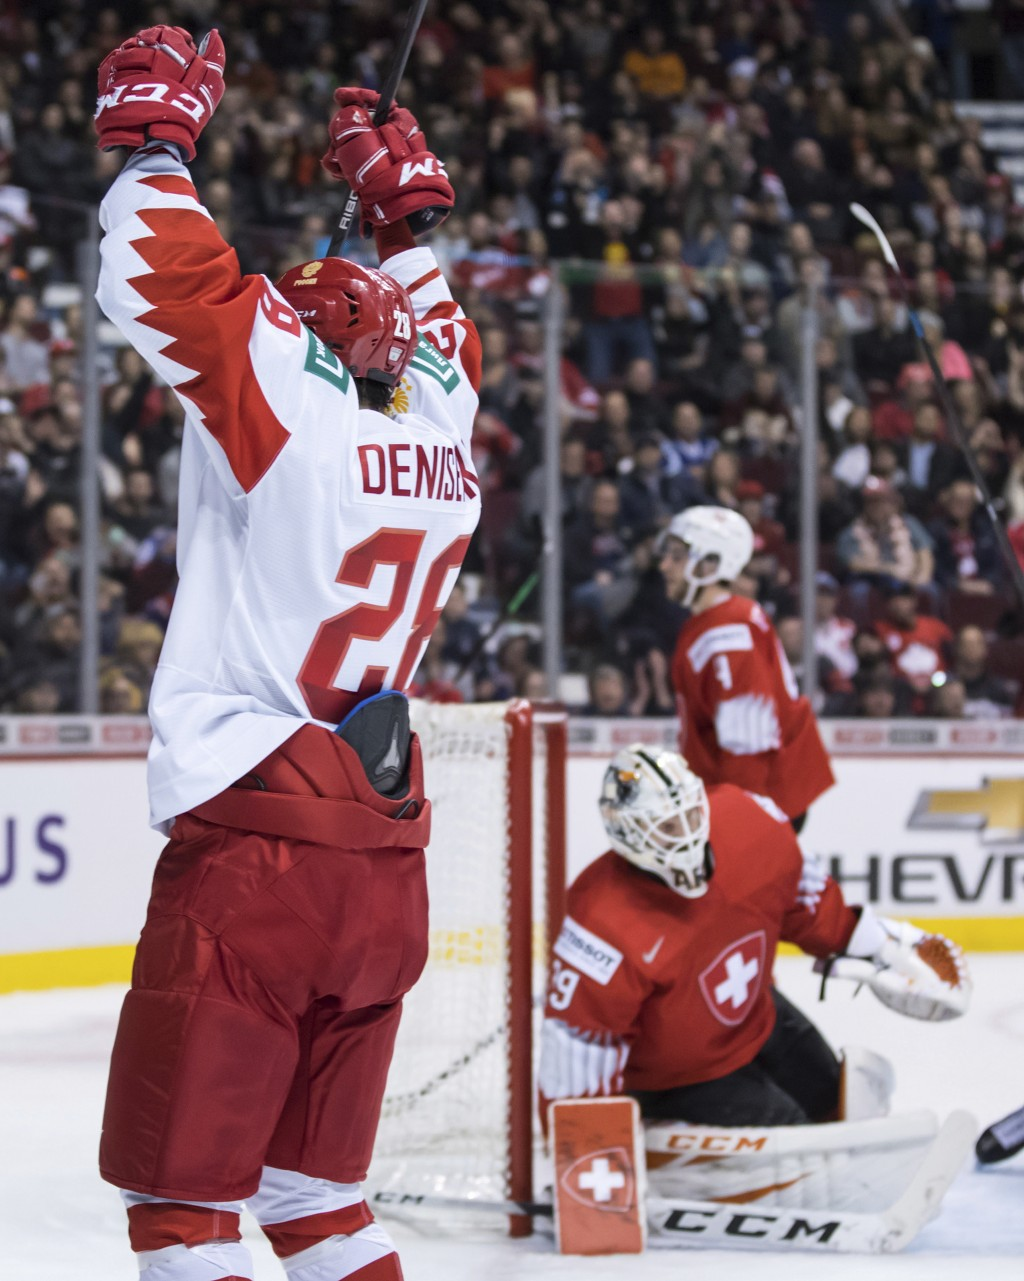 Russia's Grigori Denisenko, front left, celebrates his goal against Switzerland goalie Akira Schmid vie for the puck during the second period of a wor...